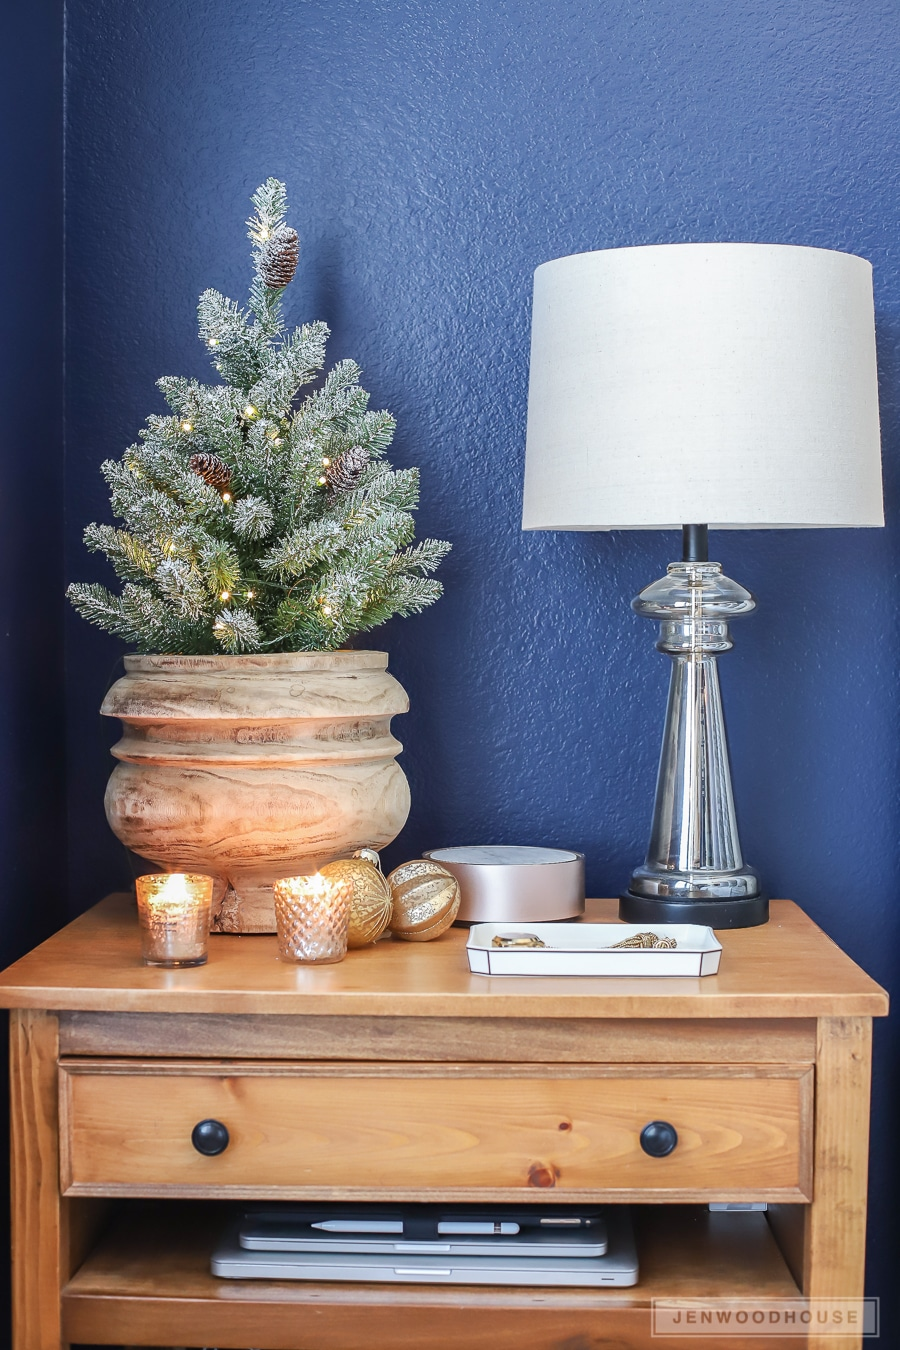 Christmas decorations on the nightstand